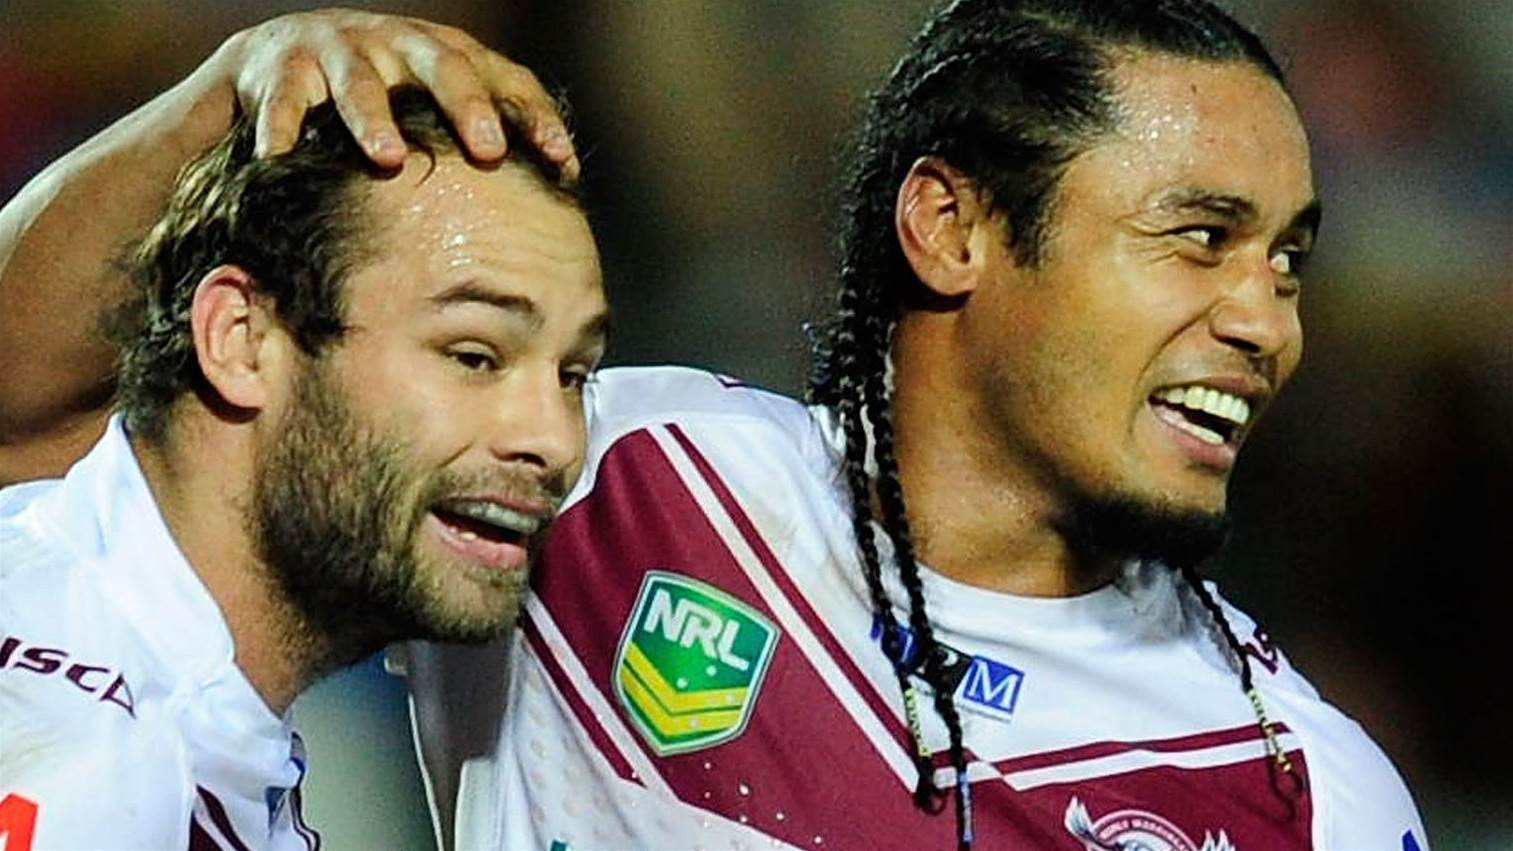 Manly duo's careers hang in the balance